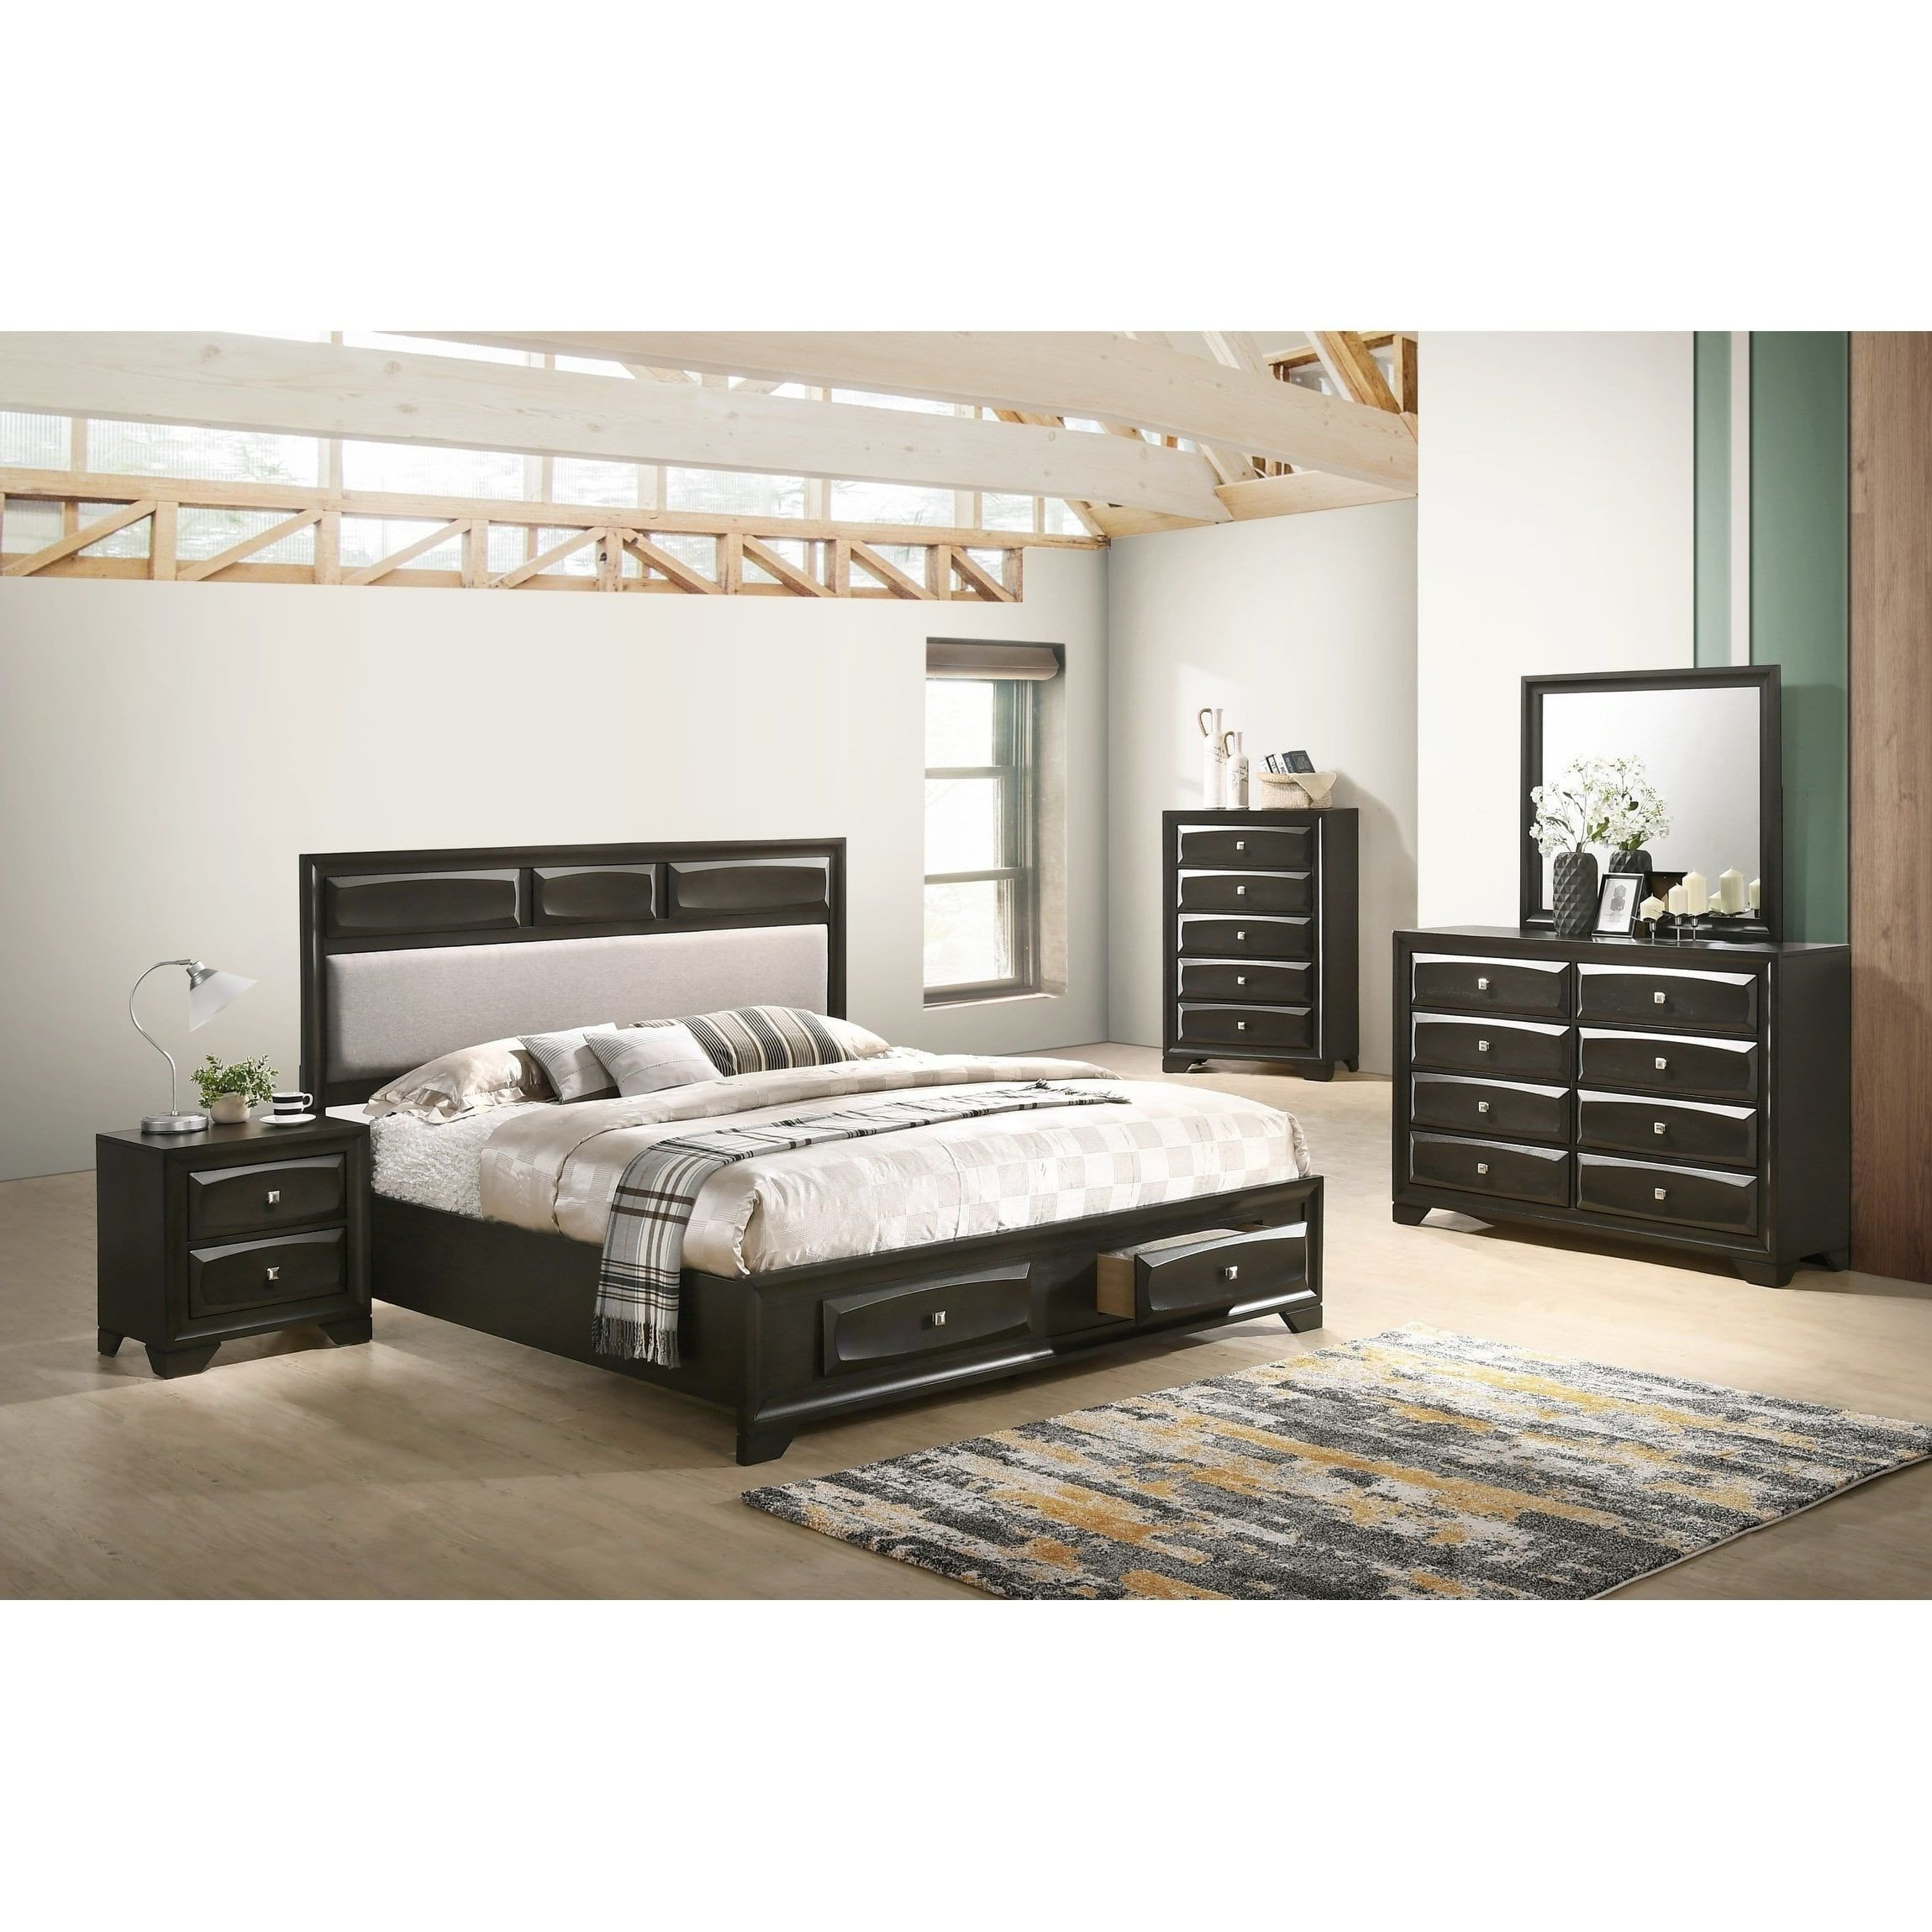 Full Size Bedroom Set Beautiful Oakland Antique Gray Finish Wood 5 Pc King Size Bedroom Set